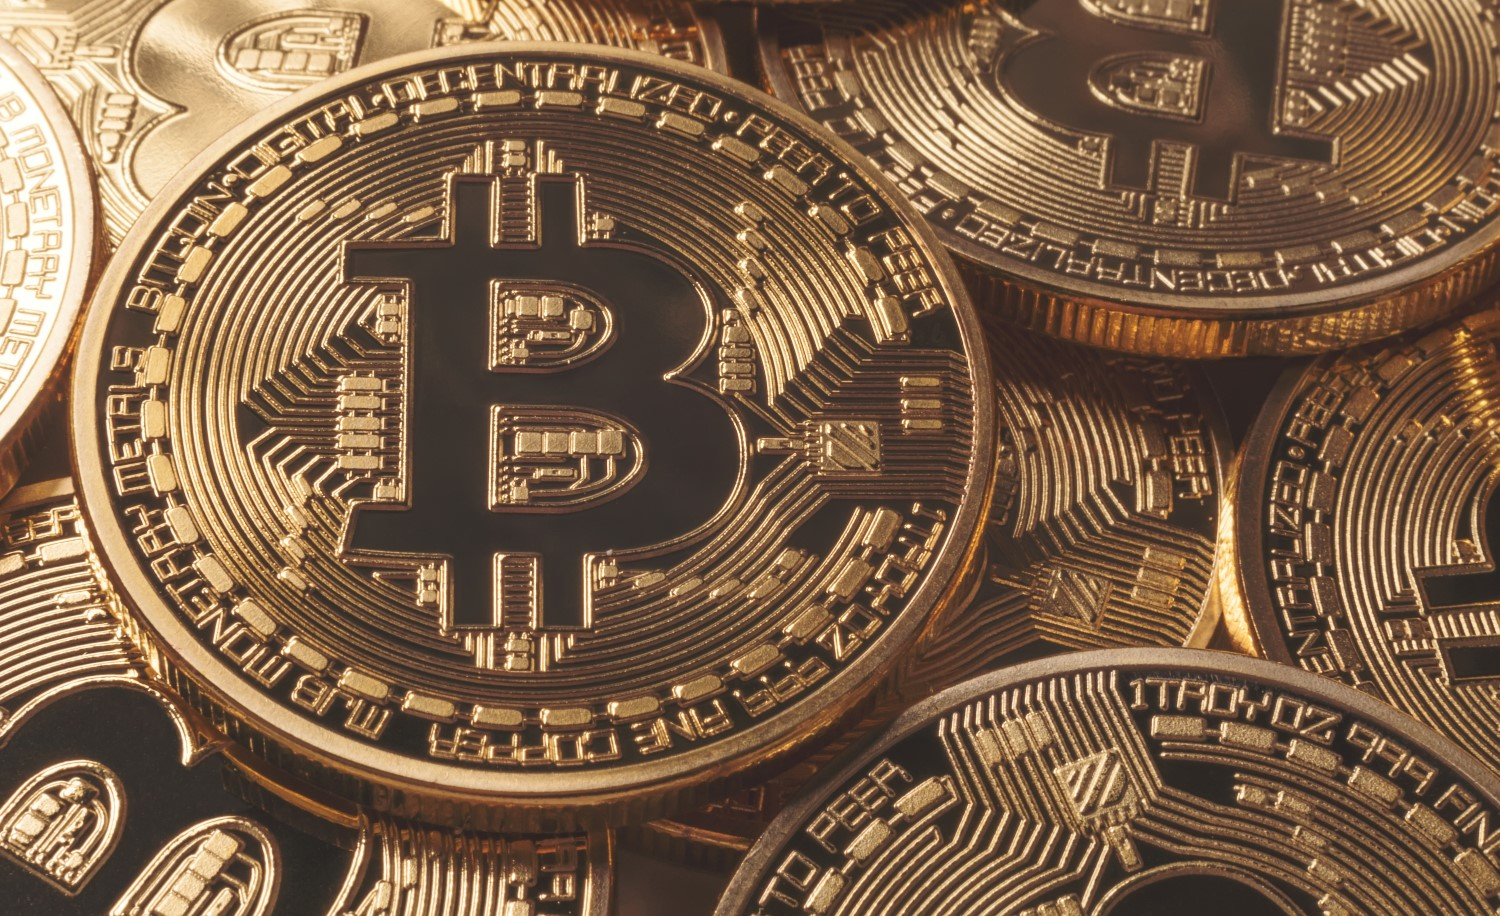 Bitcoin Drops Below $3.4K to Set a New 2018 Low - CoinDesk